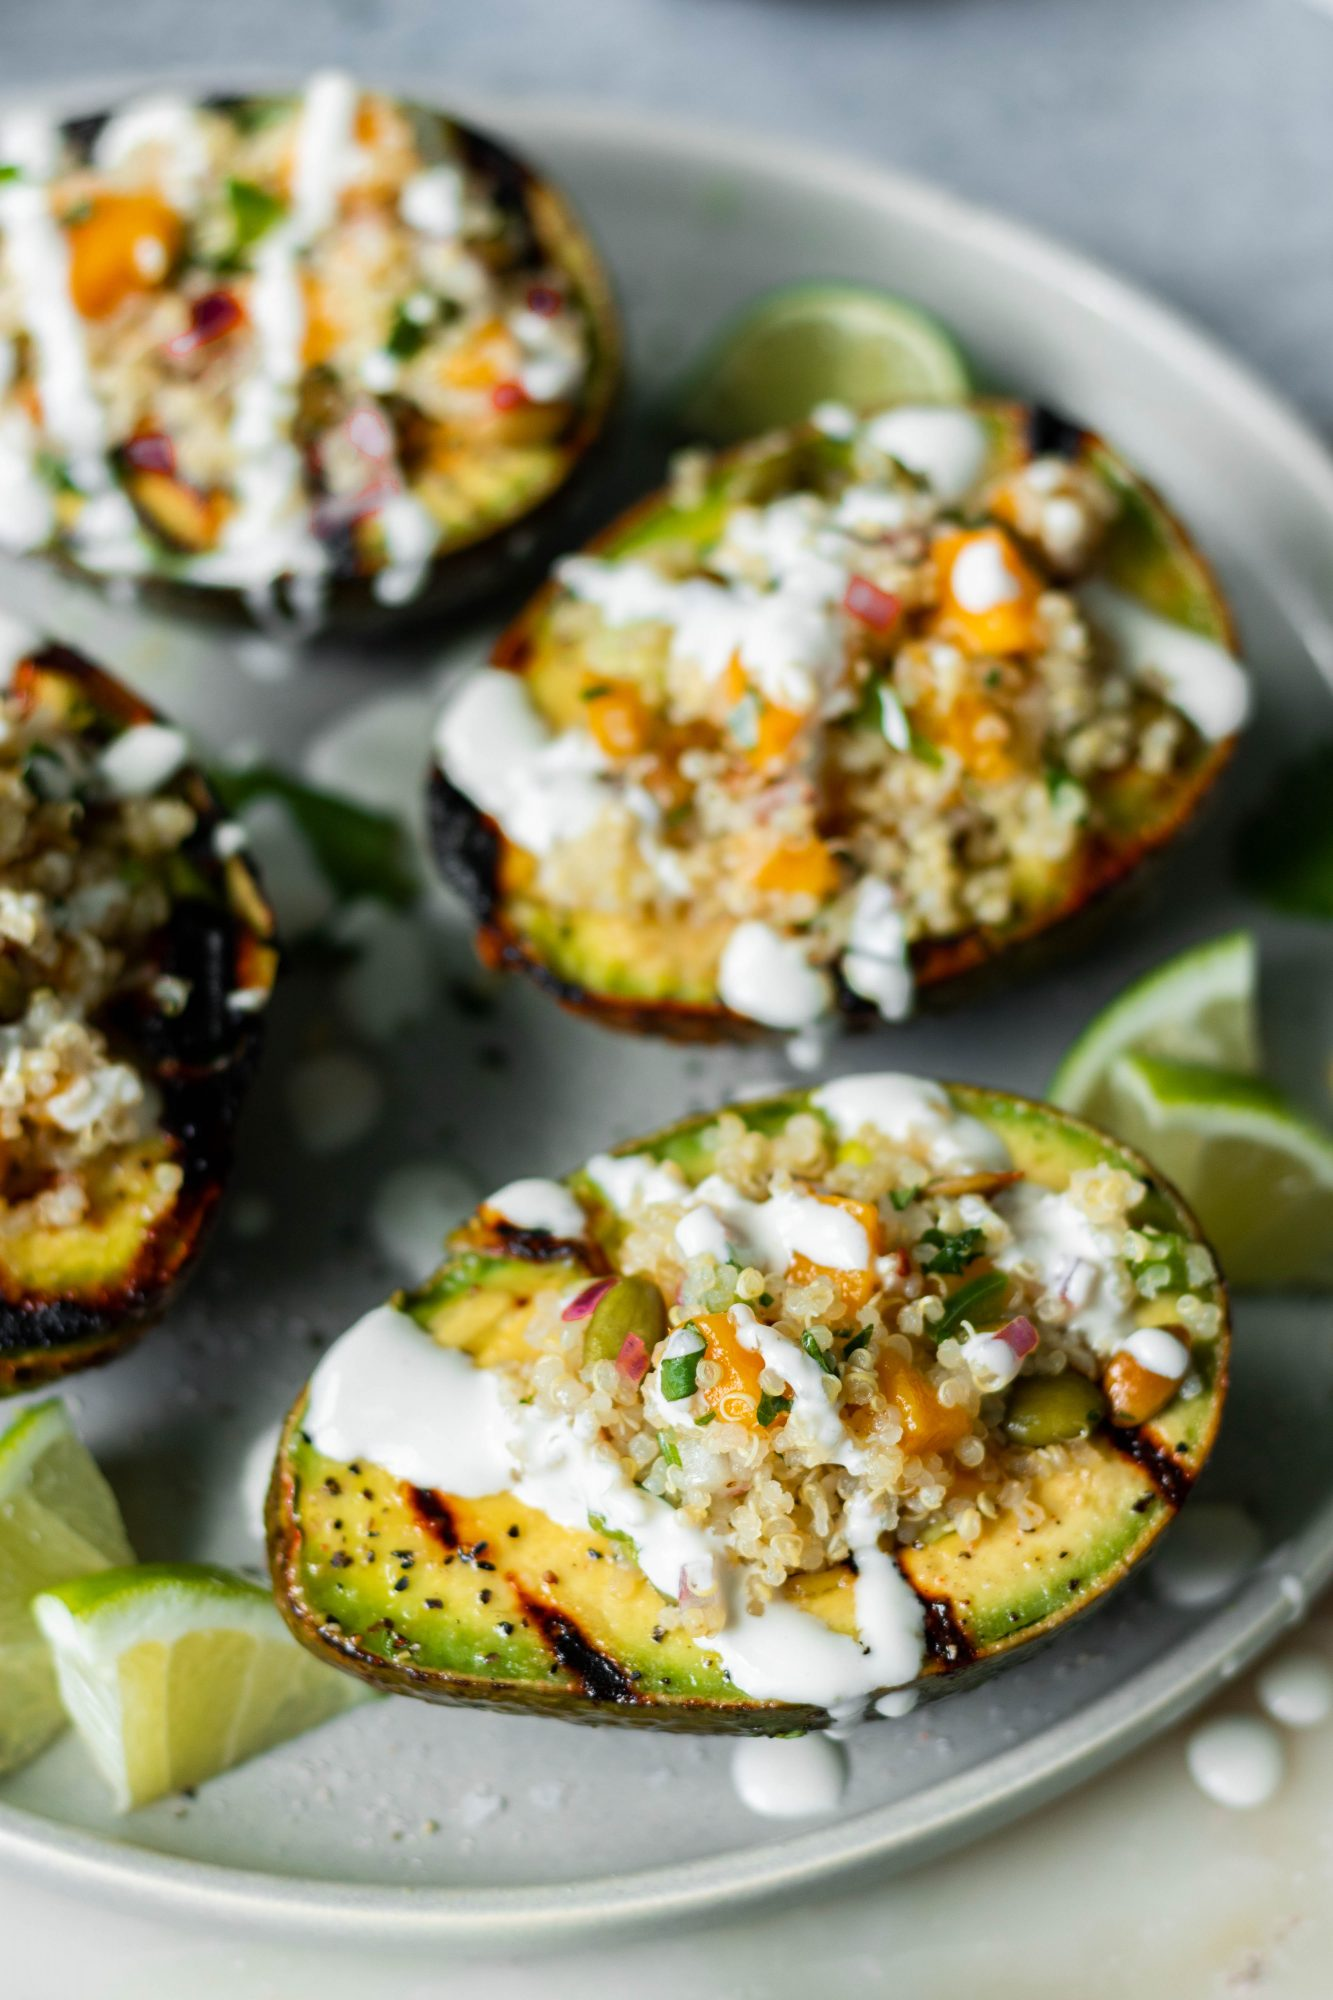 Grilled Avocados with Quinoa Mango Cilantro Salad Drizzled with Sour Cream